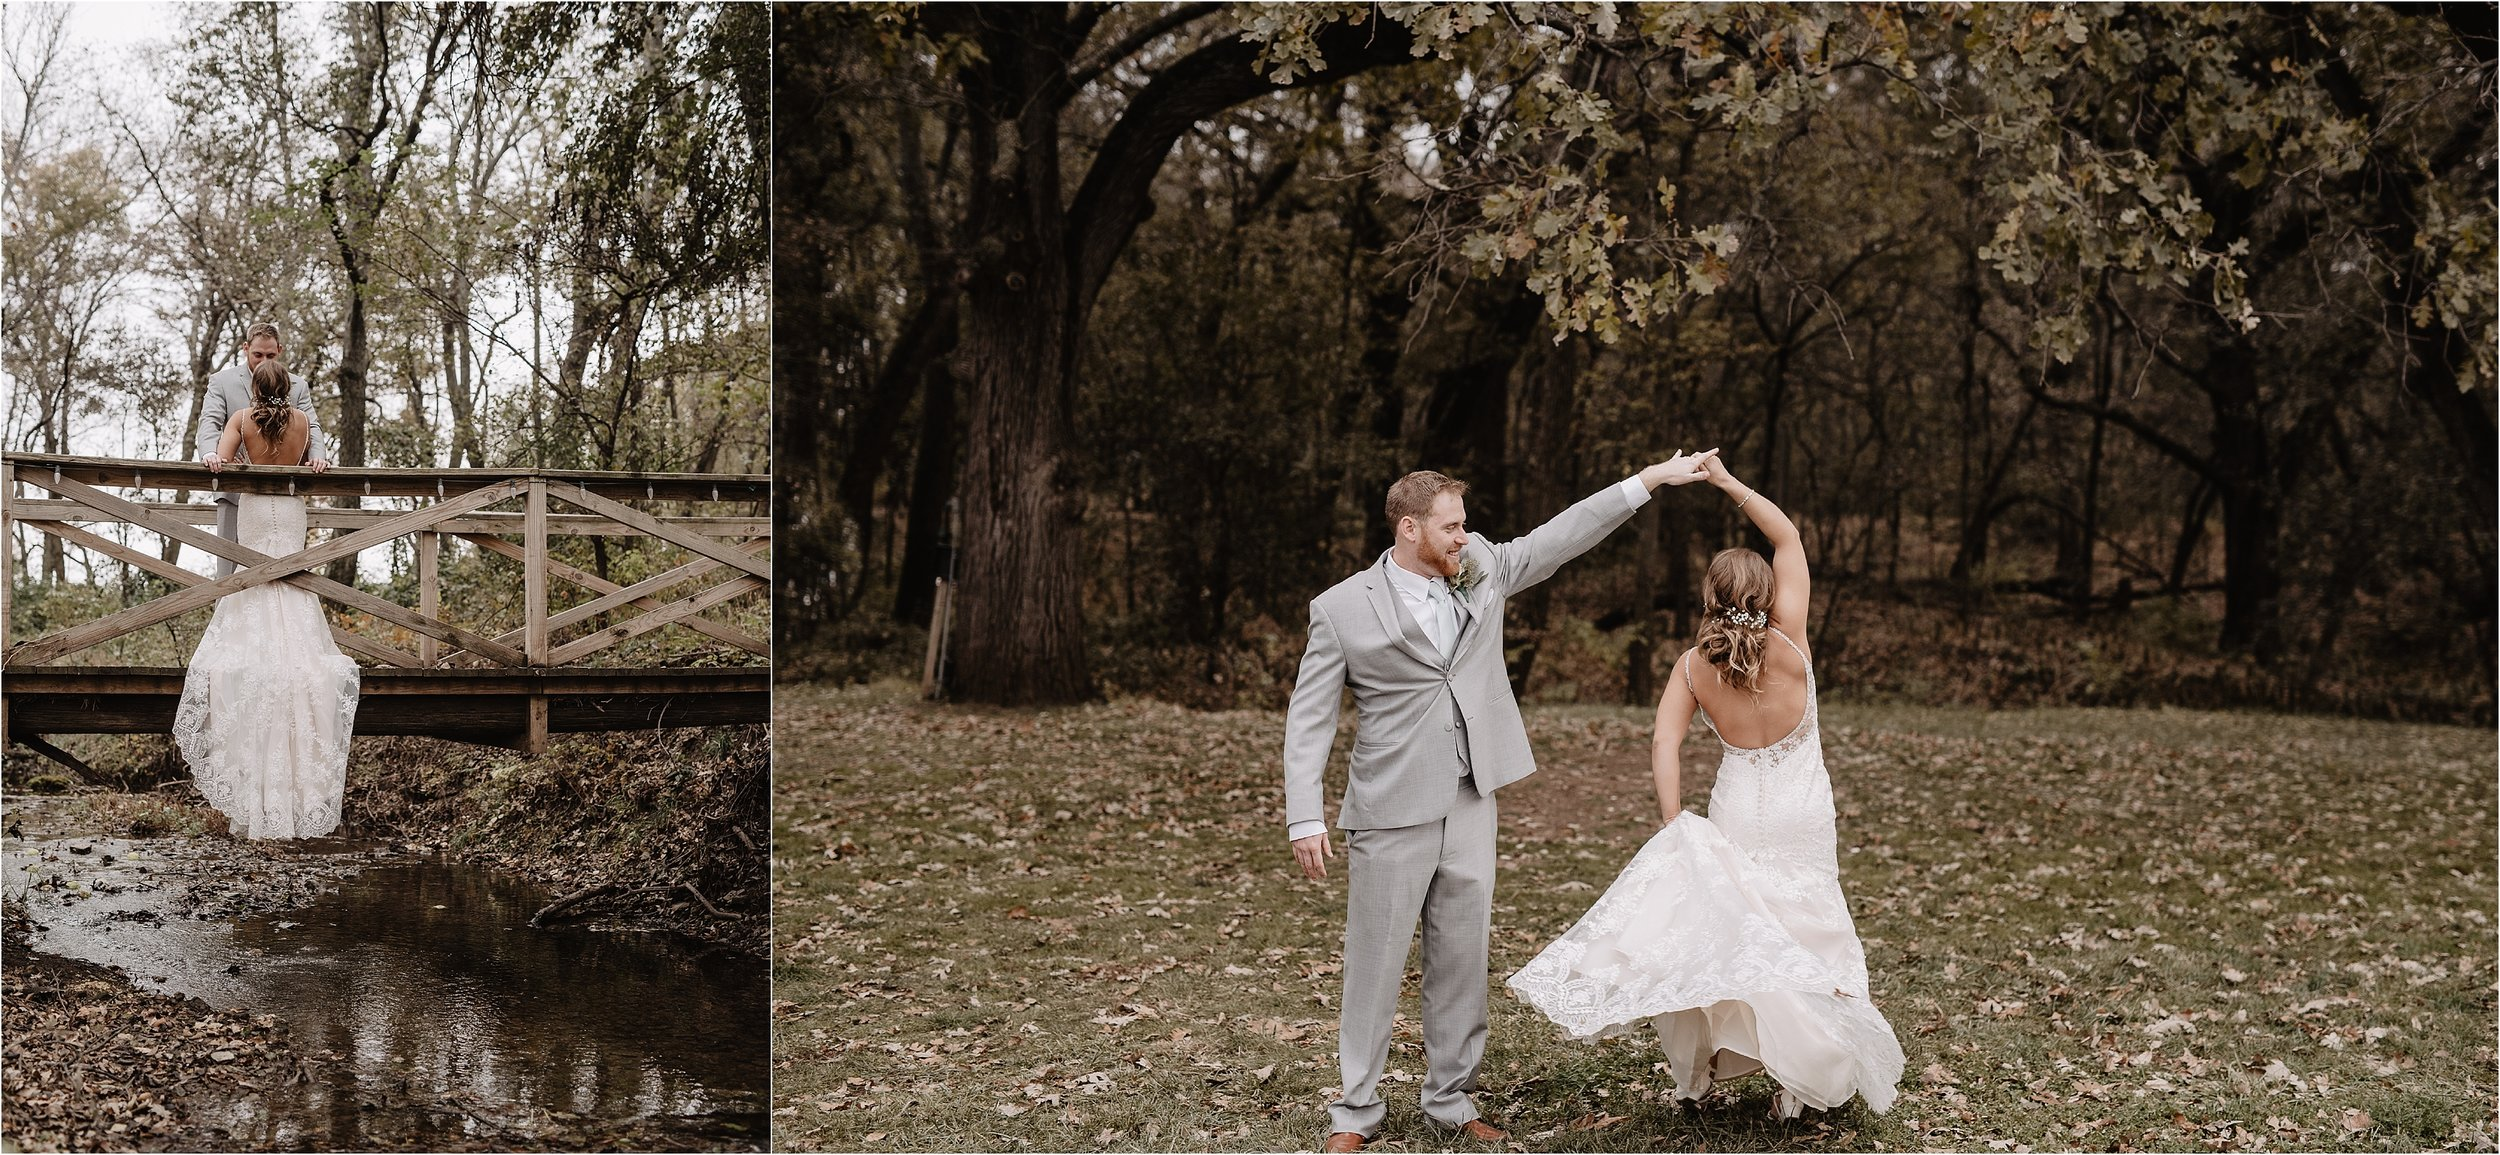 Fulton Valley Farms Wedding, Abby Bindrum & Jordan Sroufe, Wichita Wedding Photographer-75.jpg